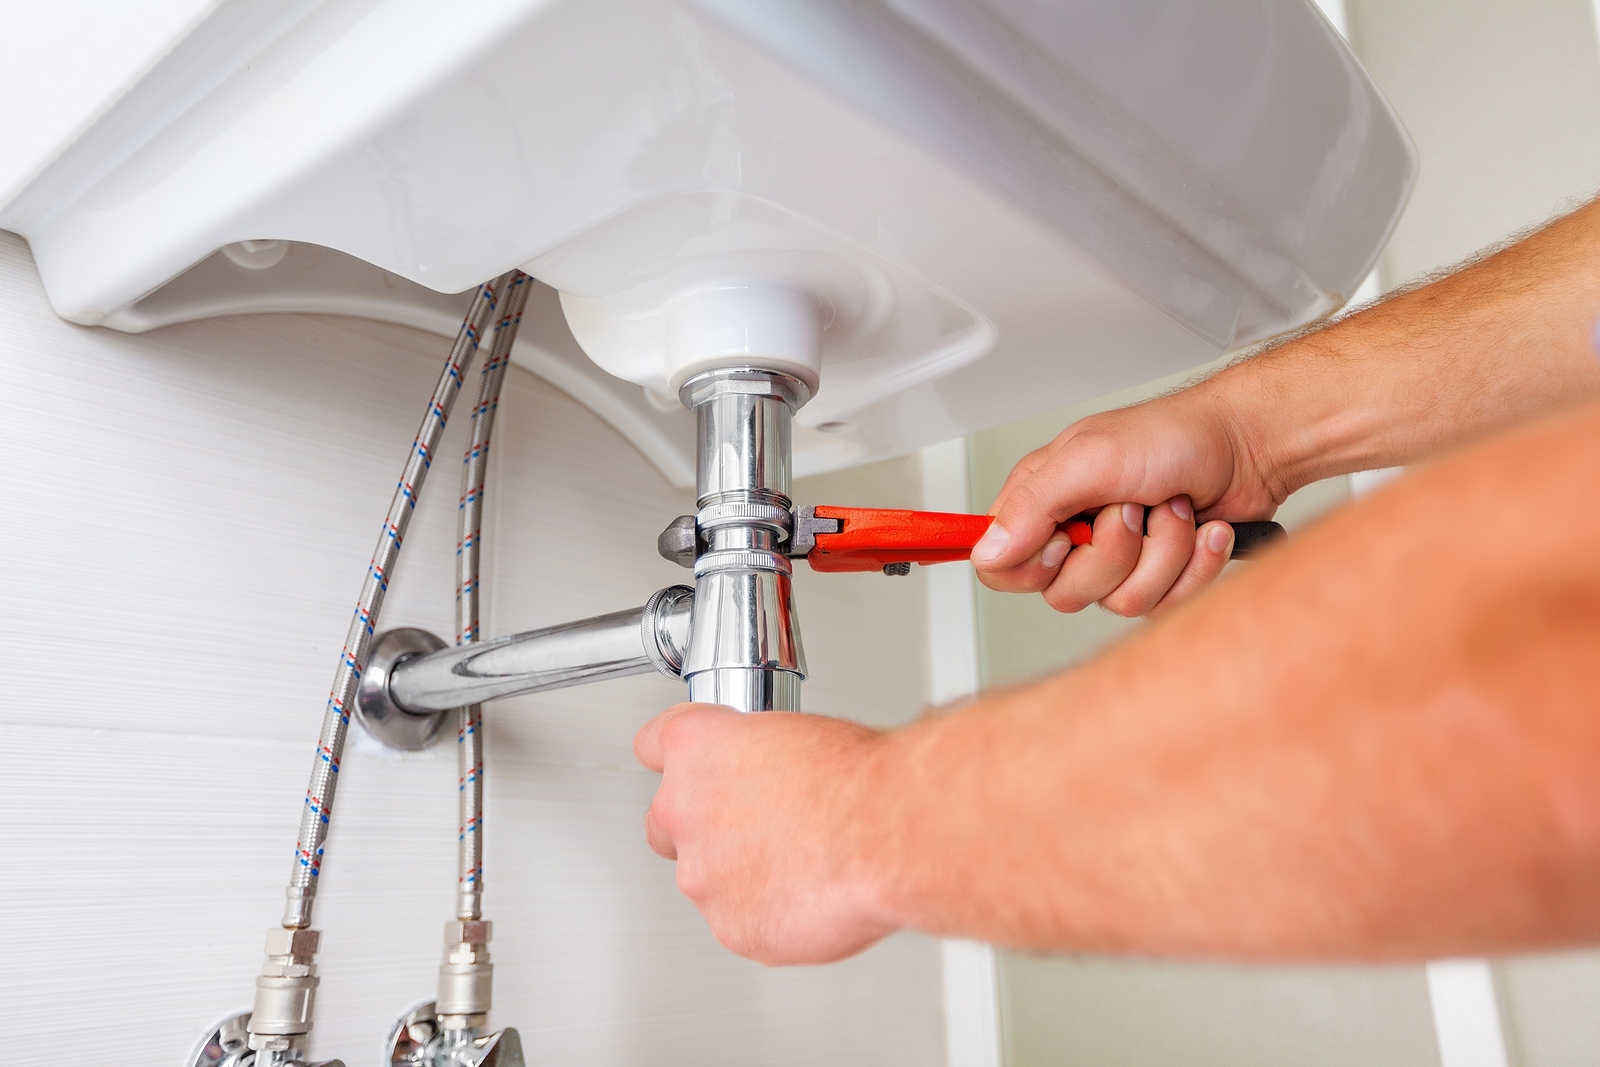 Plumbing Repair Services in Buffalo NY